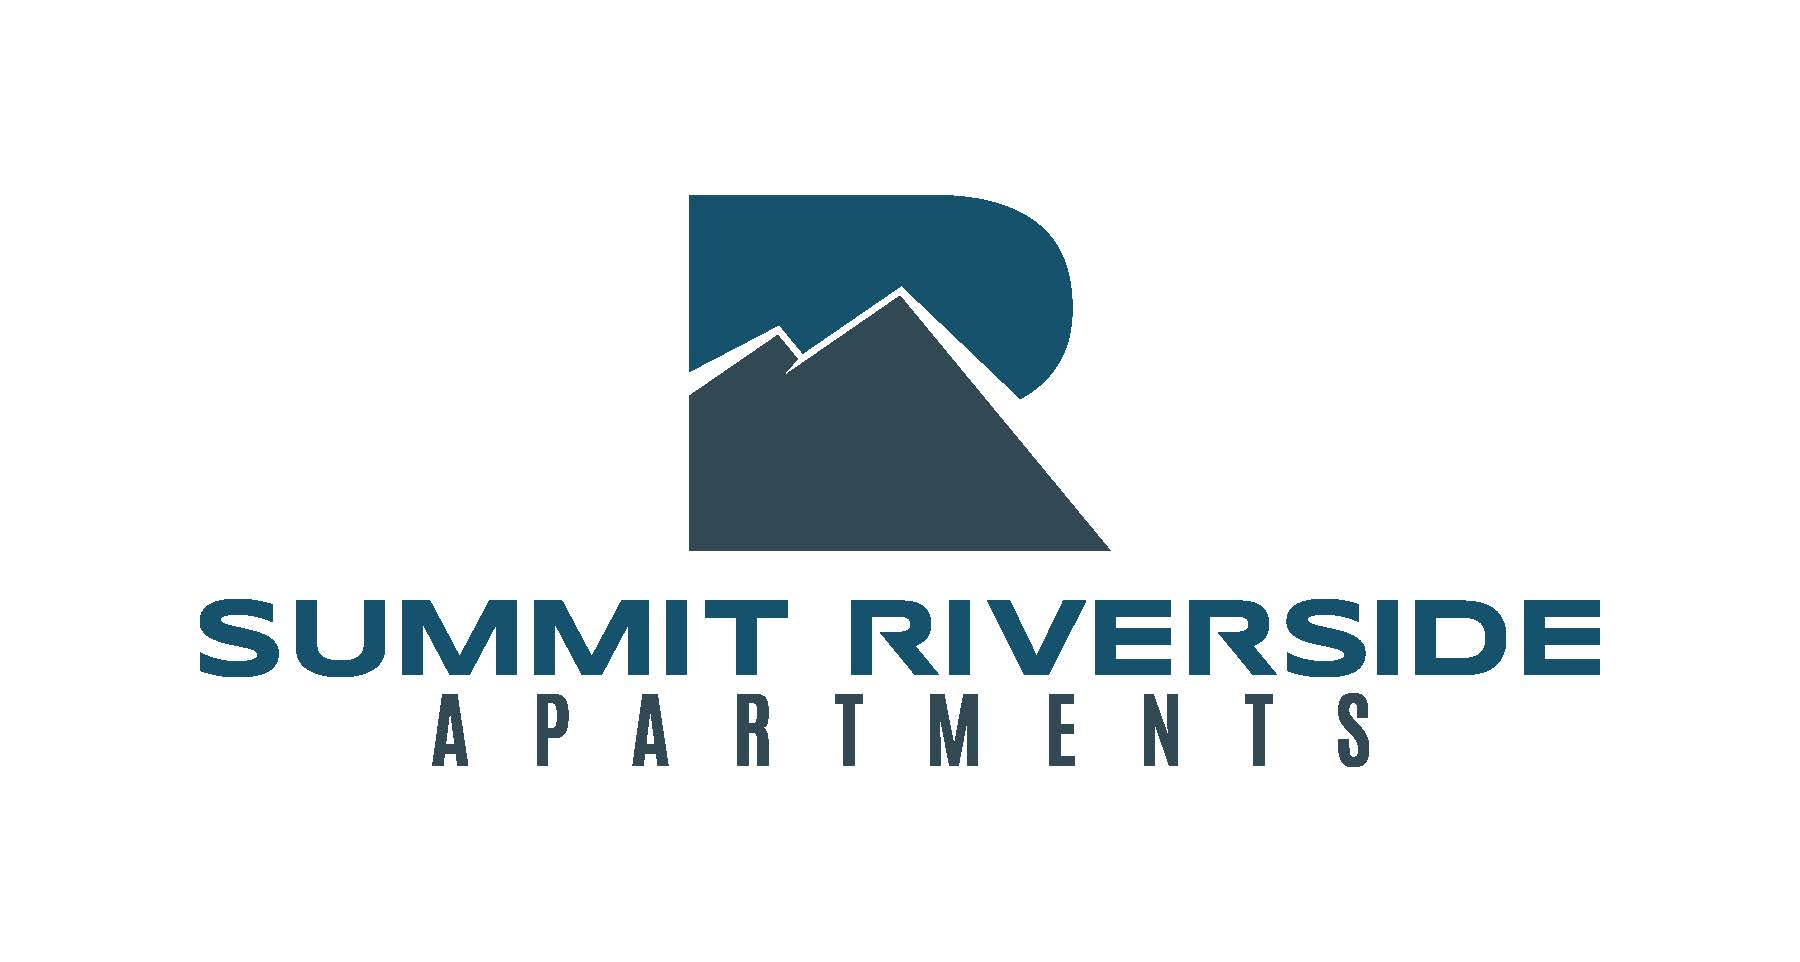 Summit Riverside Apartments